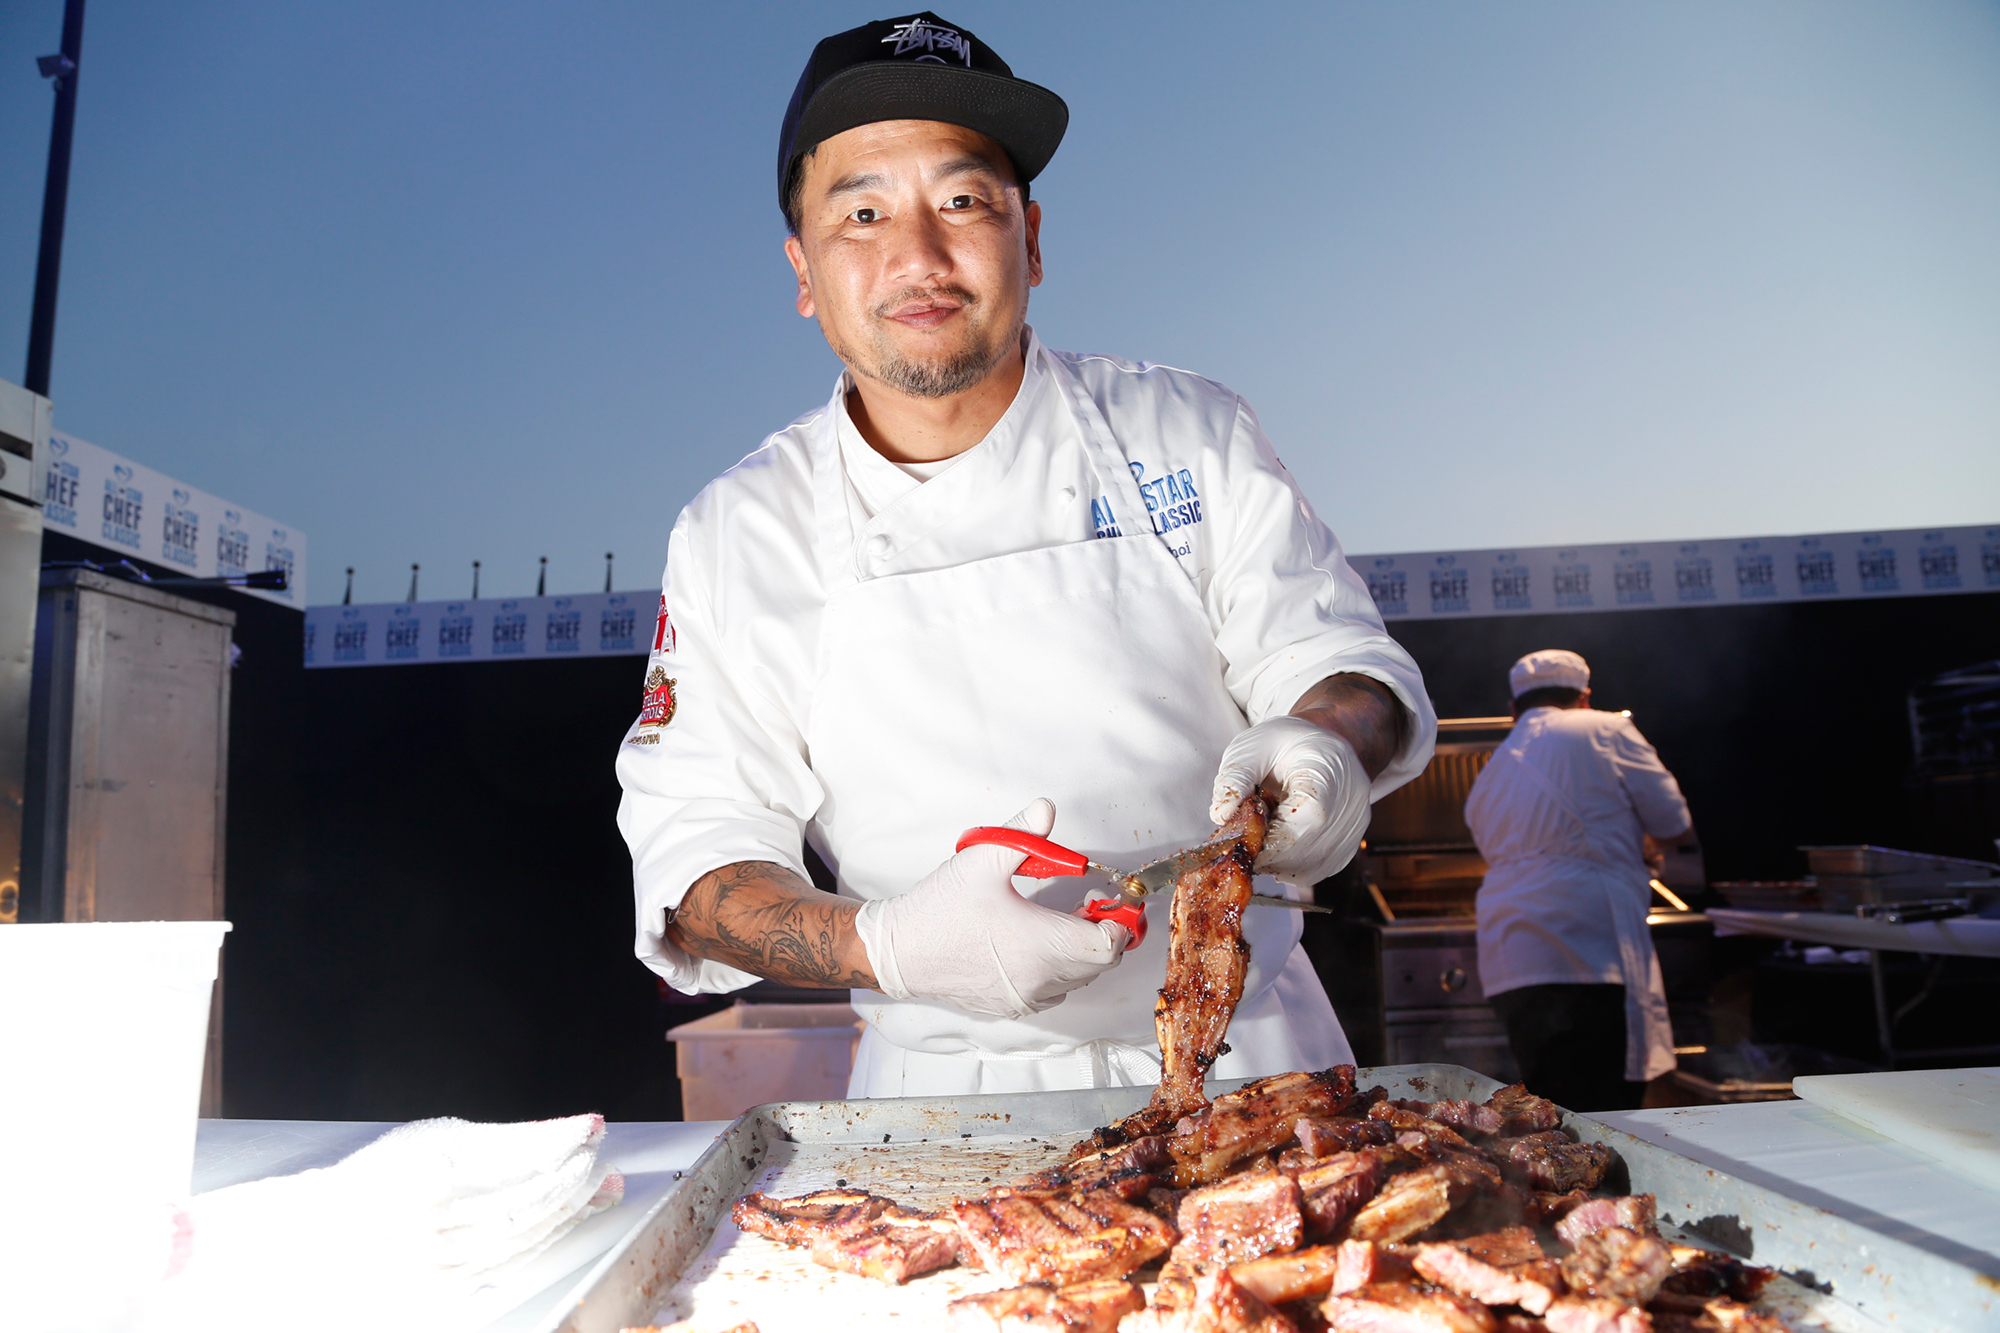 Hottest Male Chefs: Curtis Stone, Antoni Porowski and More - Choi, is known for being one of the earliest pioneers of the food truck craze – thanks to his own gourmet Korean taco truck, Kogi – and he has been a prolific fixture on the Los Angeles food scene for years. The Korean-born cook, 48, who is known for melding various cuisines also teaches students in South Los Angeles how to cook.